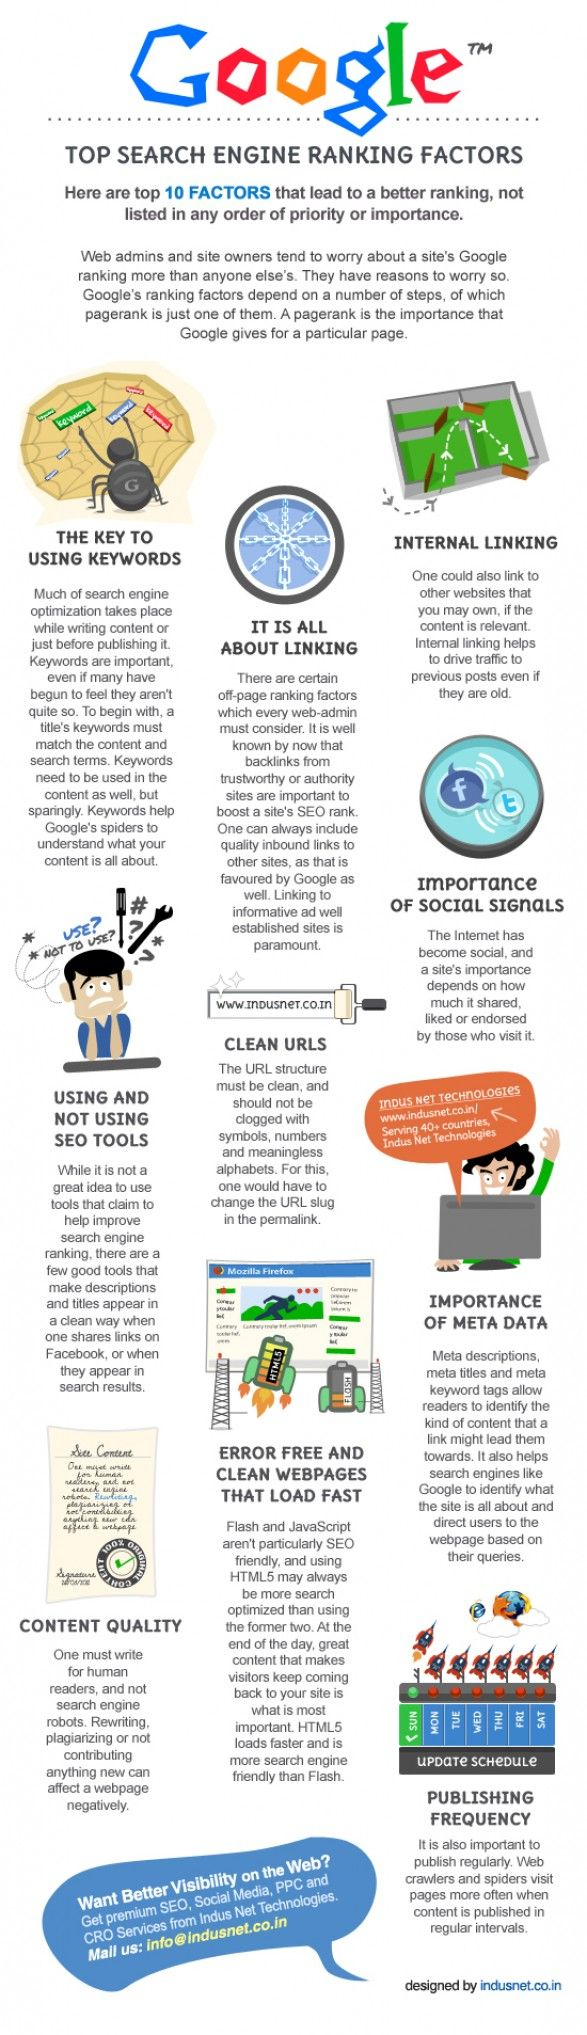 INFOGRAPHIC: Top Search Engine Ranking Factors for Google ~ Sociable360 | Best Social Media & Web 2.0 Resources, Blogging, SEO & Marketing Tips